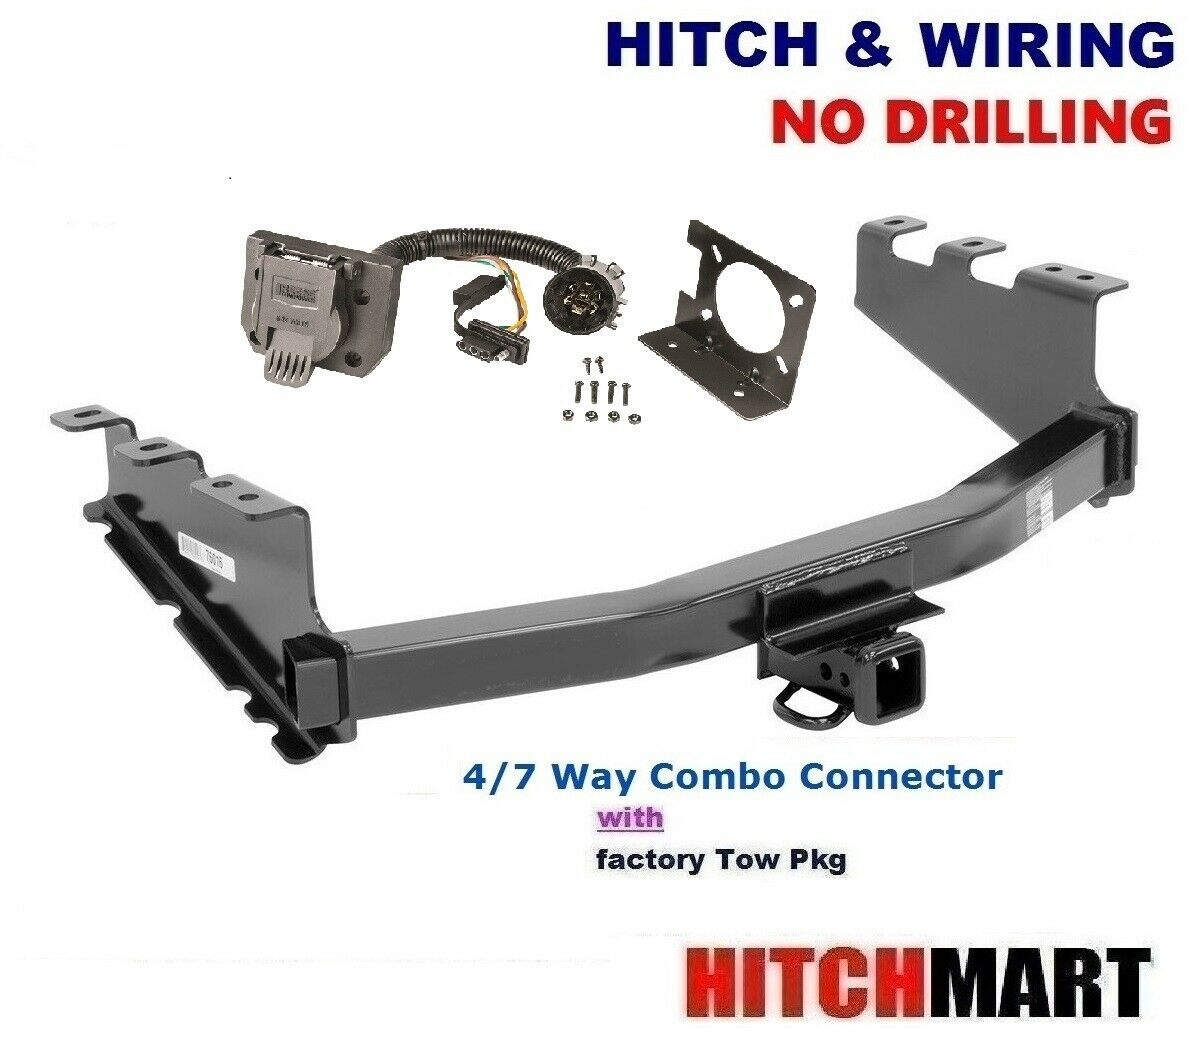 Trailer Hitch Wiring For 14 17 Chevy Silverado 1500 Sierra Pickup 76016 1 Of 4only 5 Available